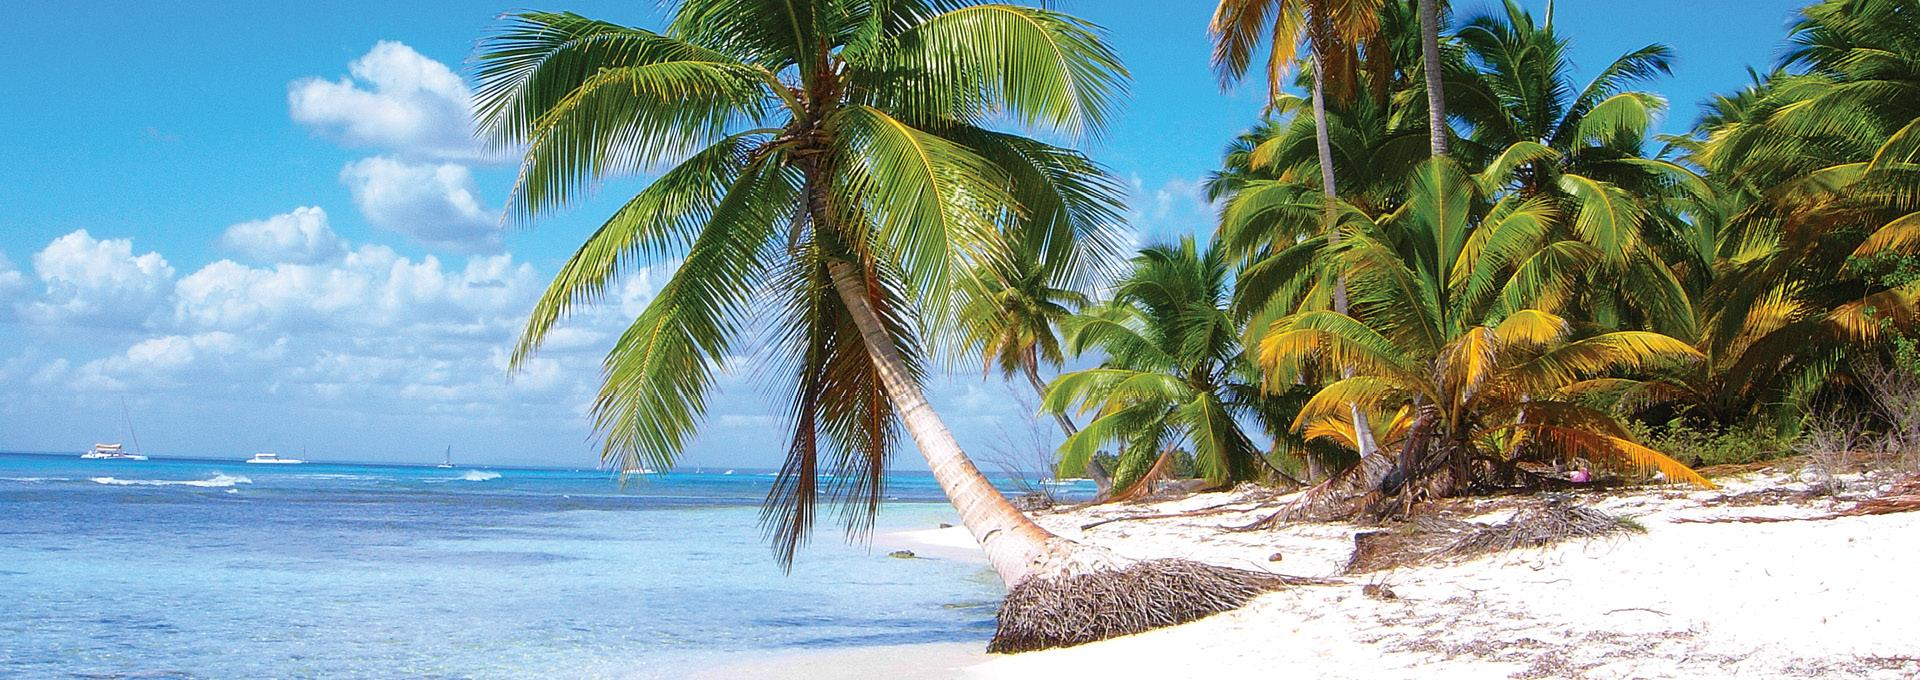 Enjoy savings on a Mexico or Caribbean vacation with our Extravaganza sales event